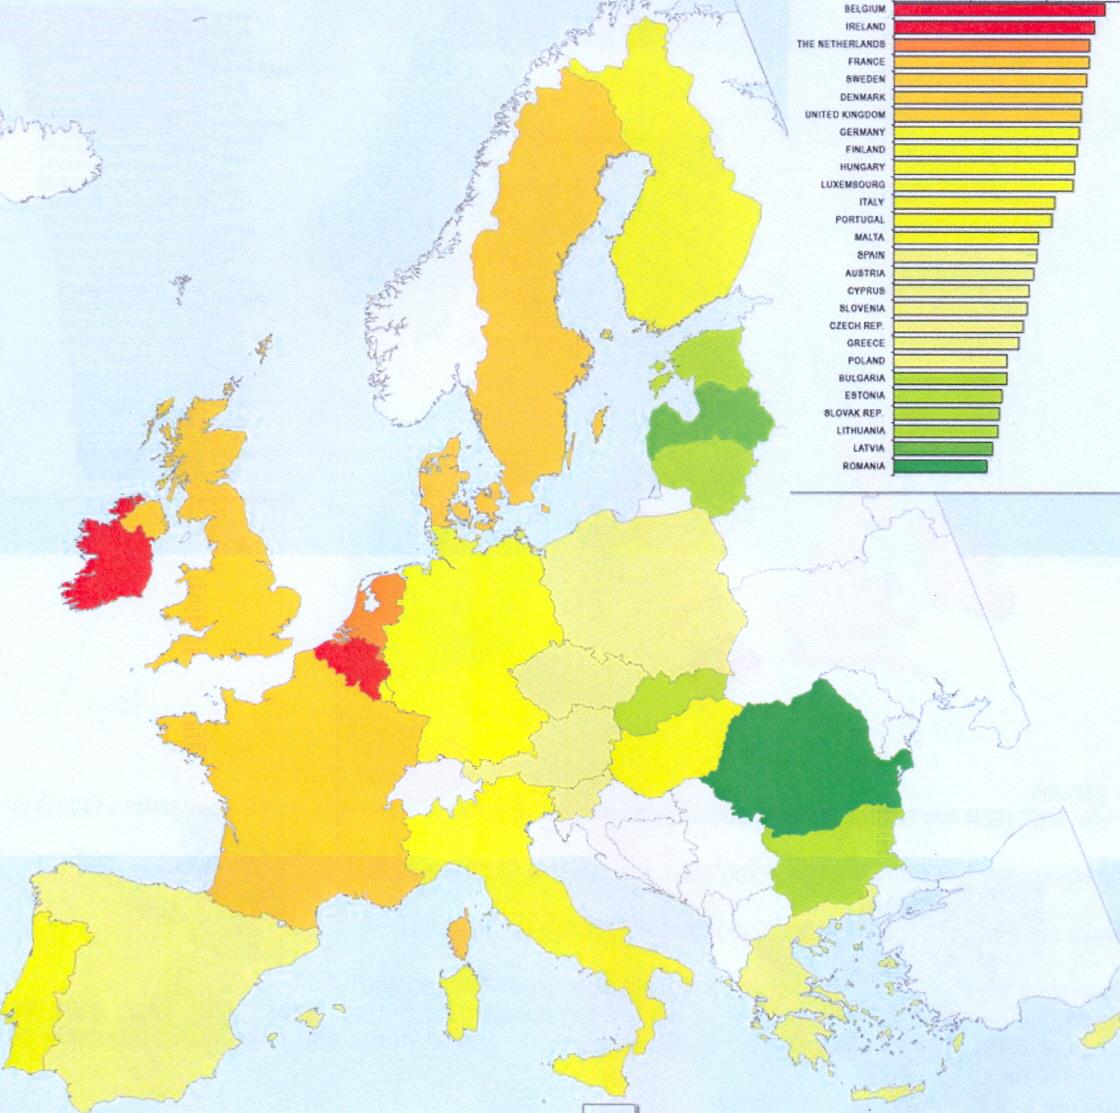 Breast cancer incidence in the EU Member States